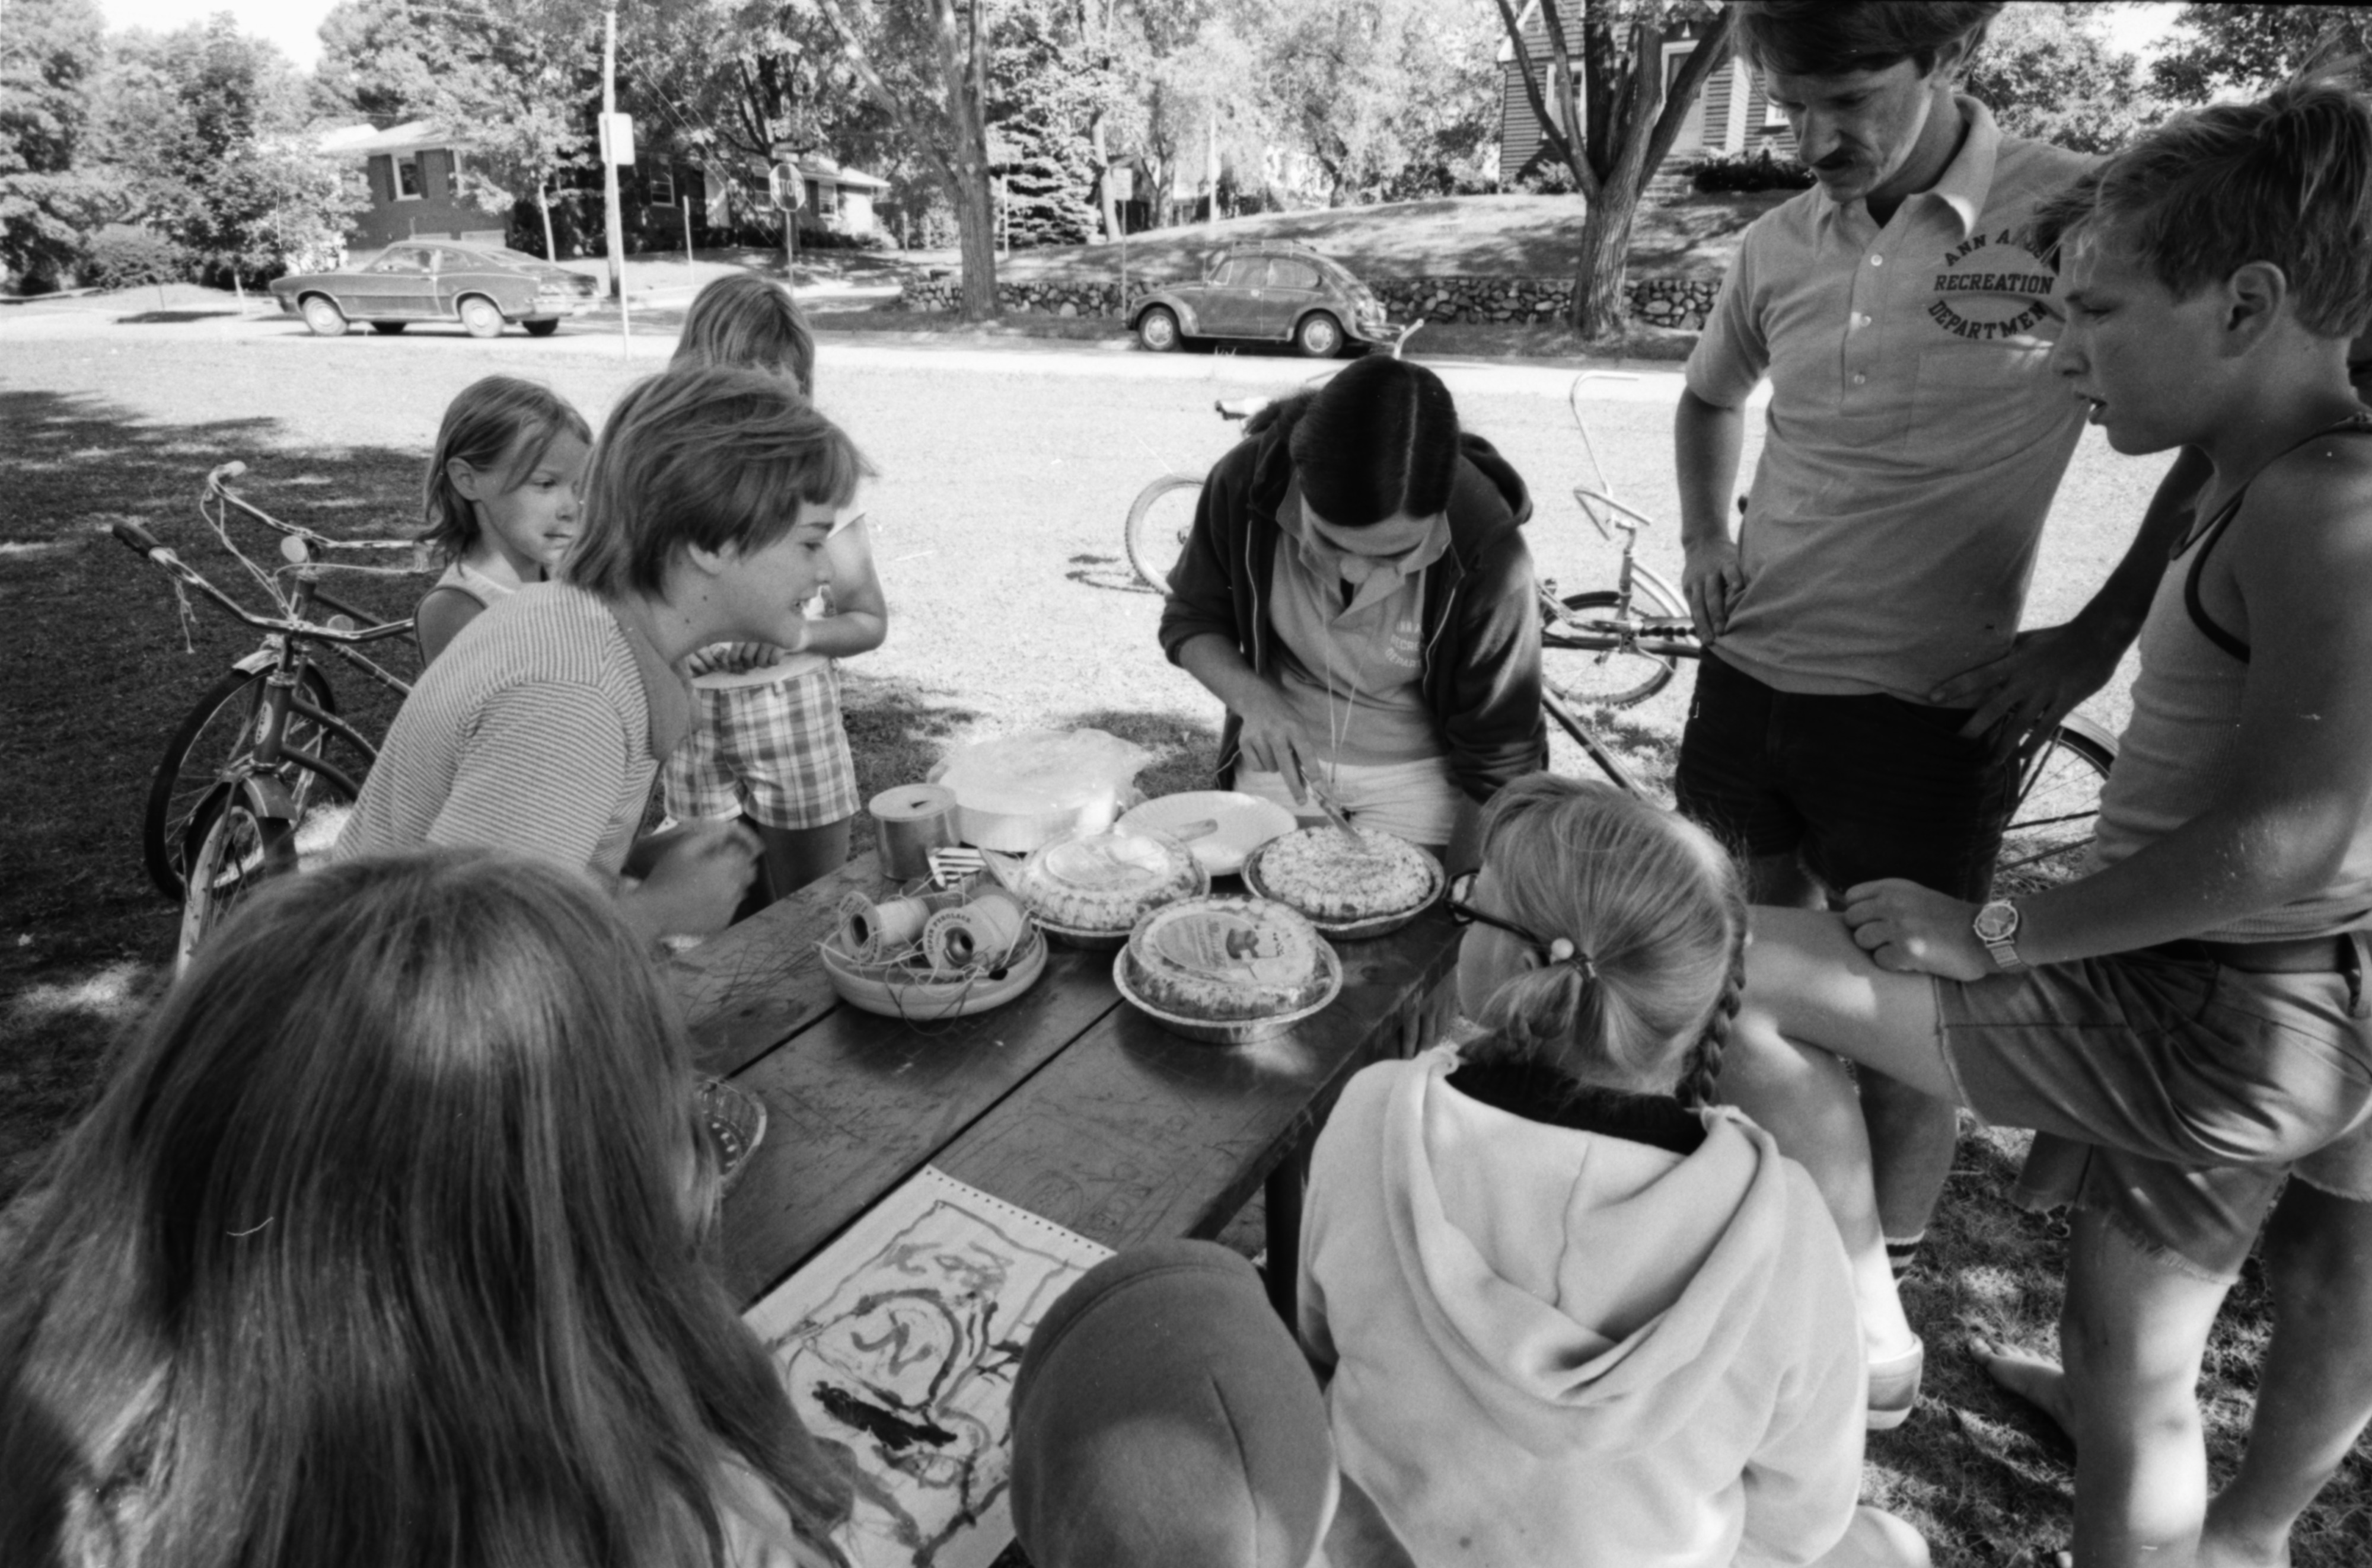 Preparing for the Pie Eating Contest at Wildwood Park, Robert Chase, July 1975 image